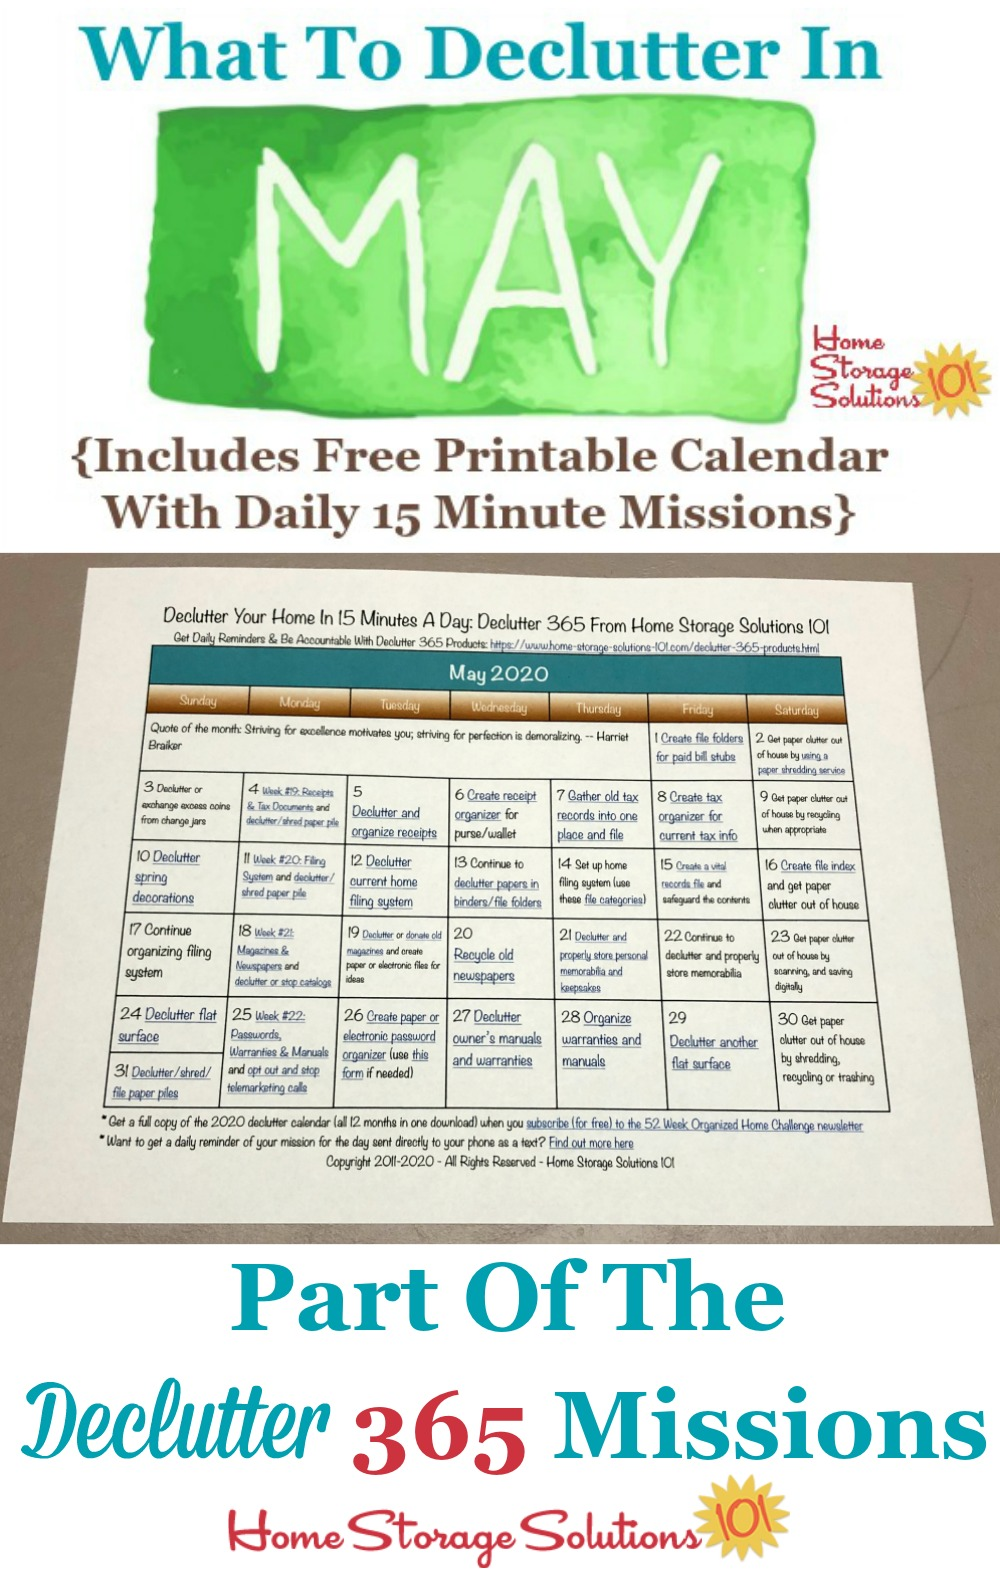 What to declutter in May 2020, including a free printable May decluttering calendar you can follow each day {on Home Storage Solutions 101} #Declutter365 #Decluttering #Declutter